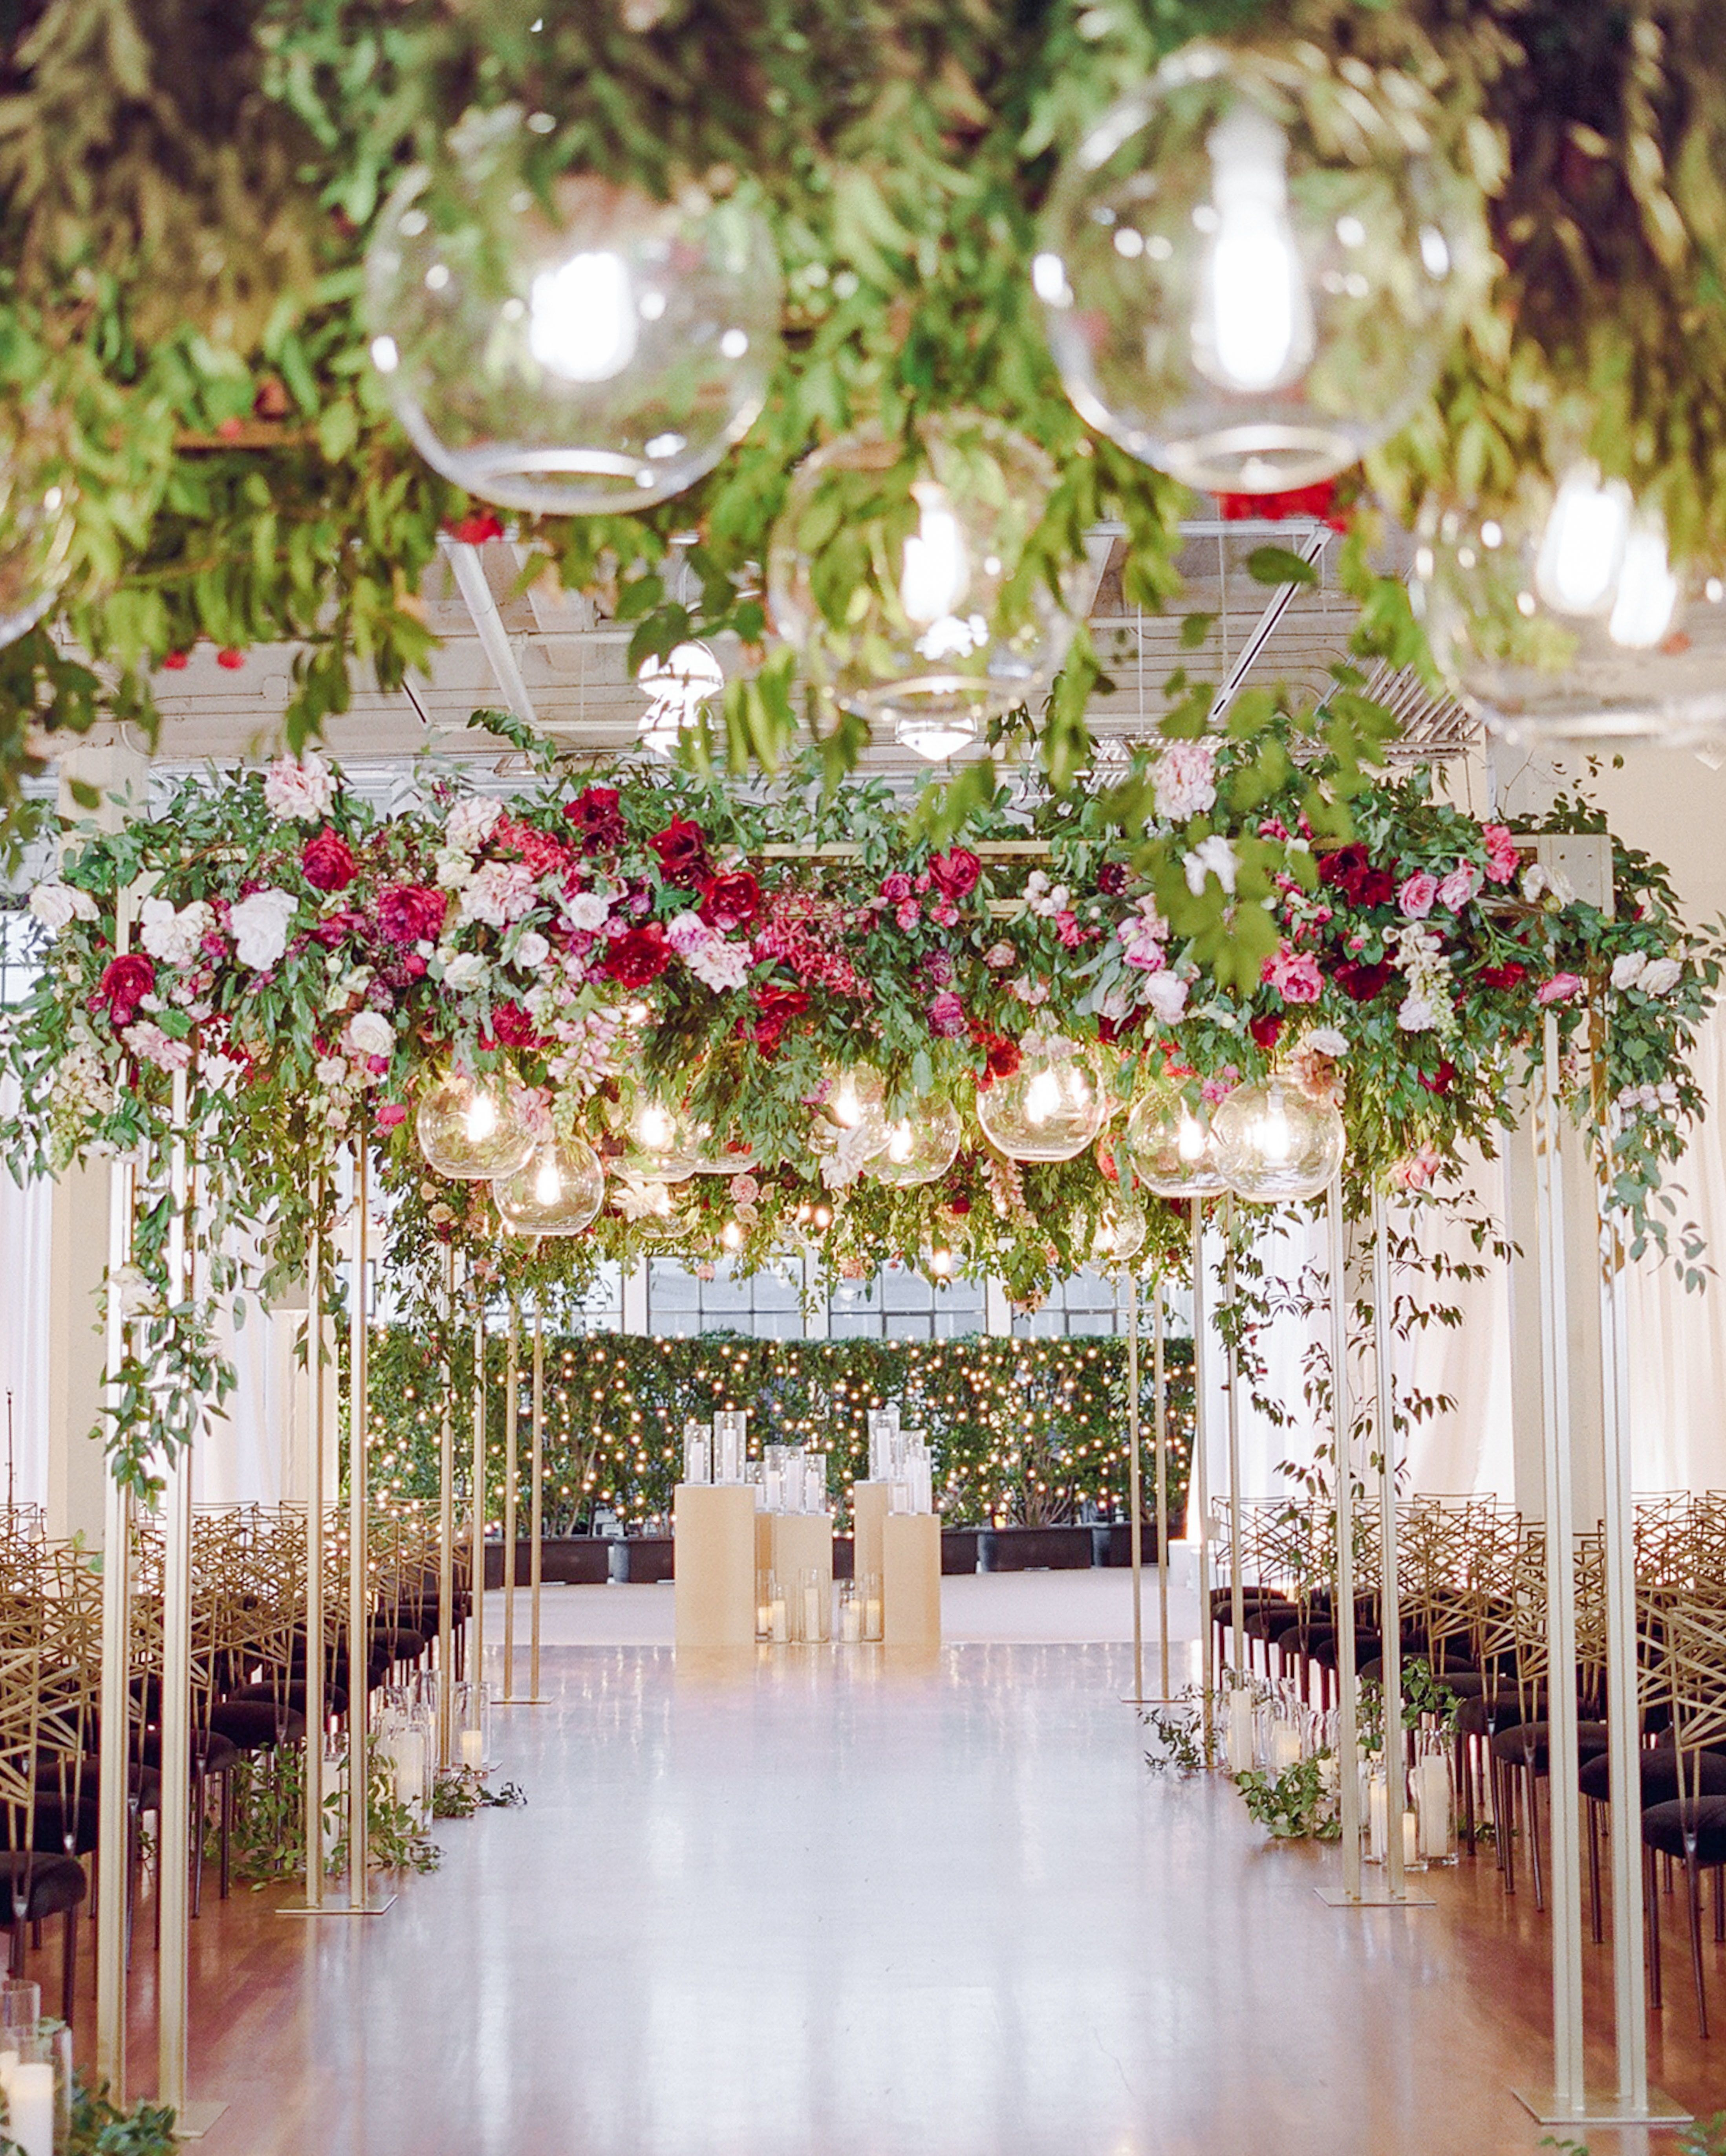 Fall Wedding Altar Decorations: 35 Altar And Aisle Decorations We Love